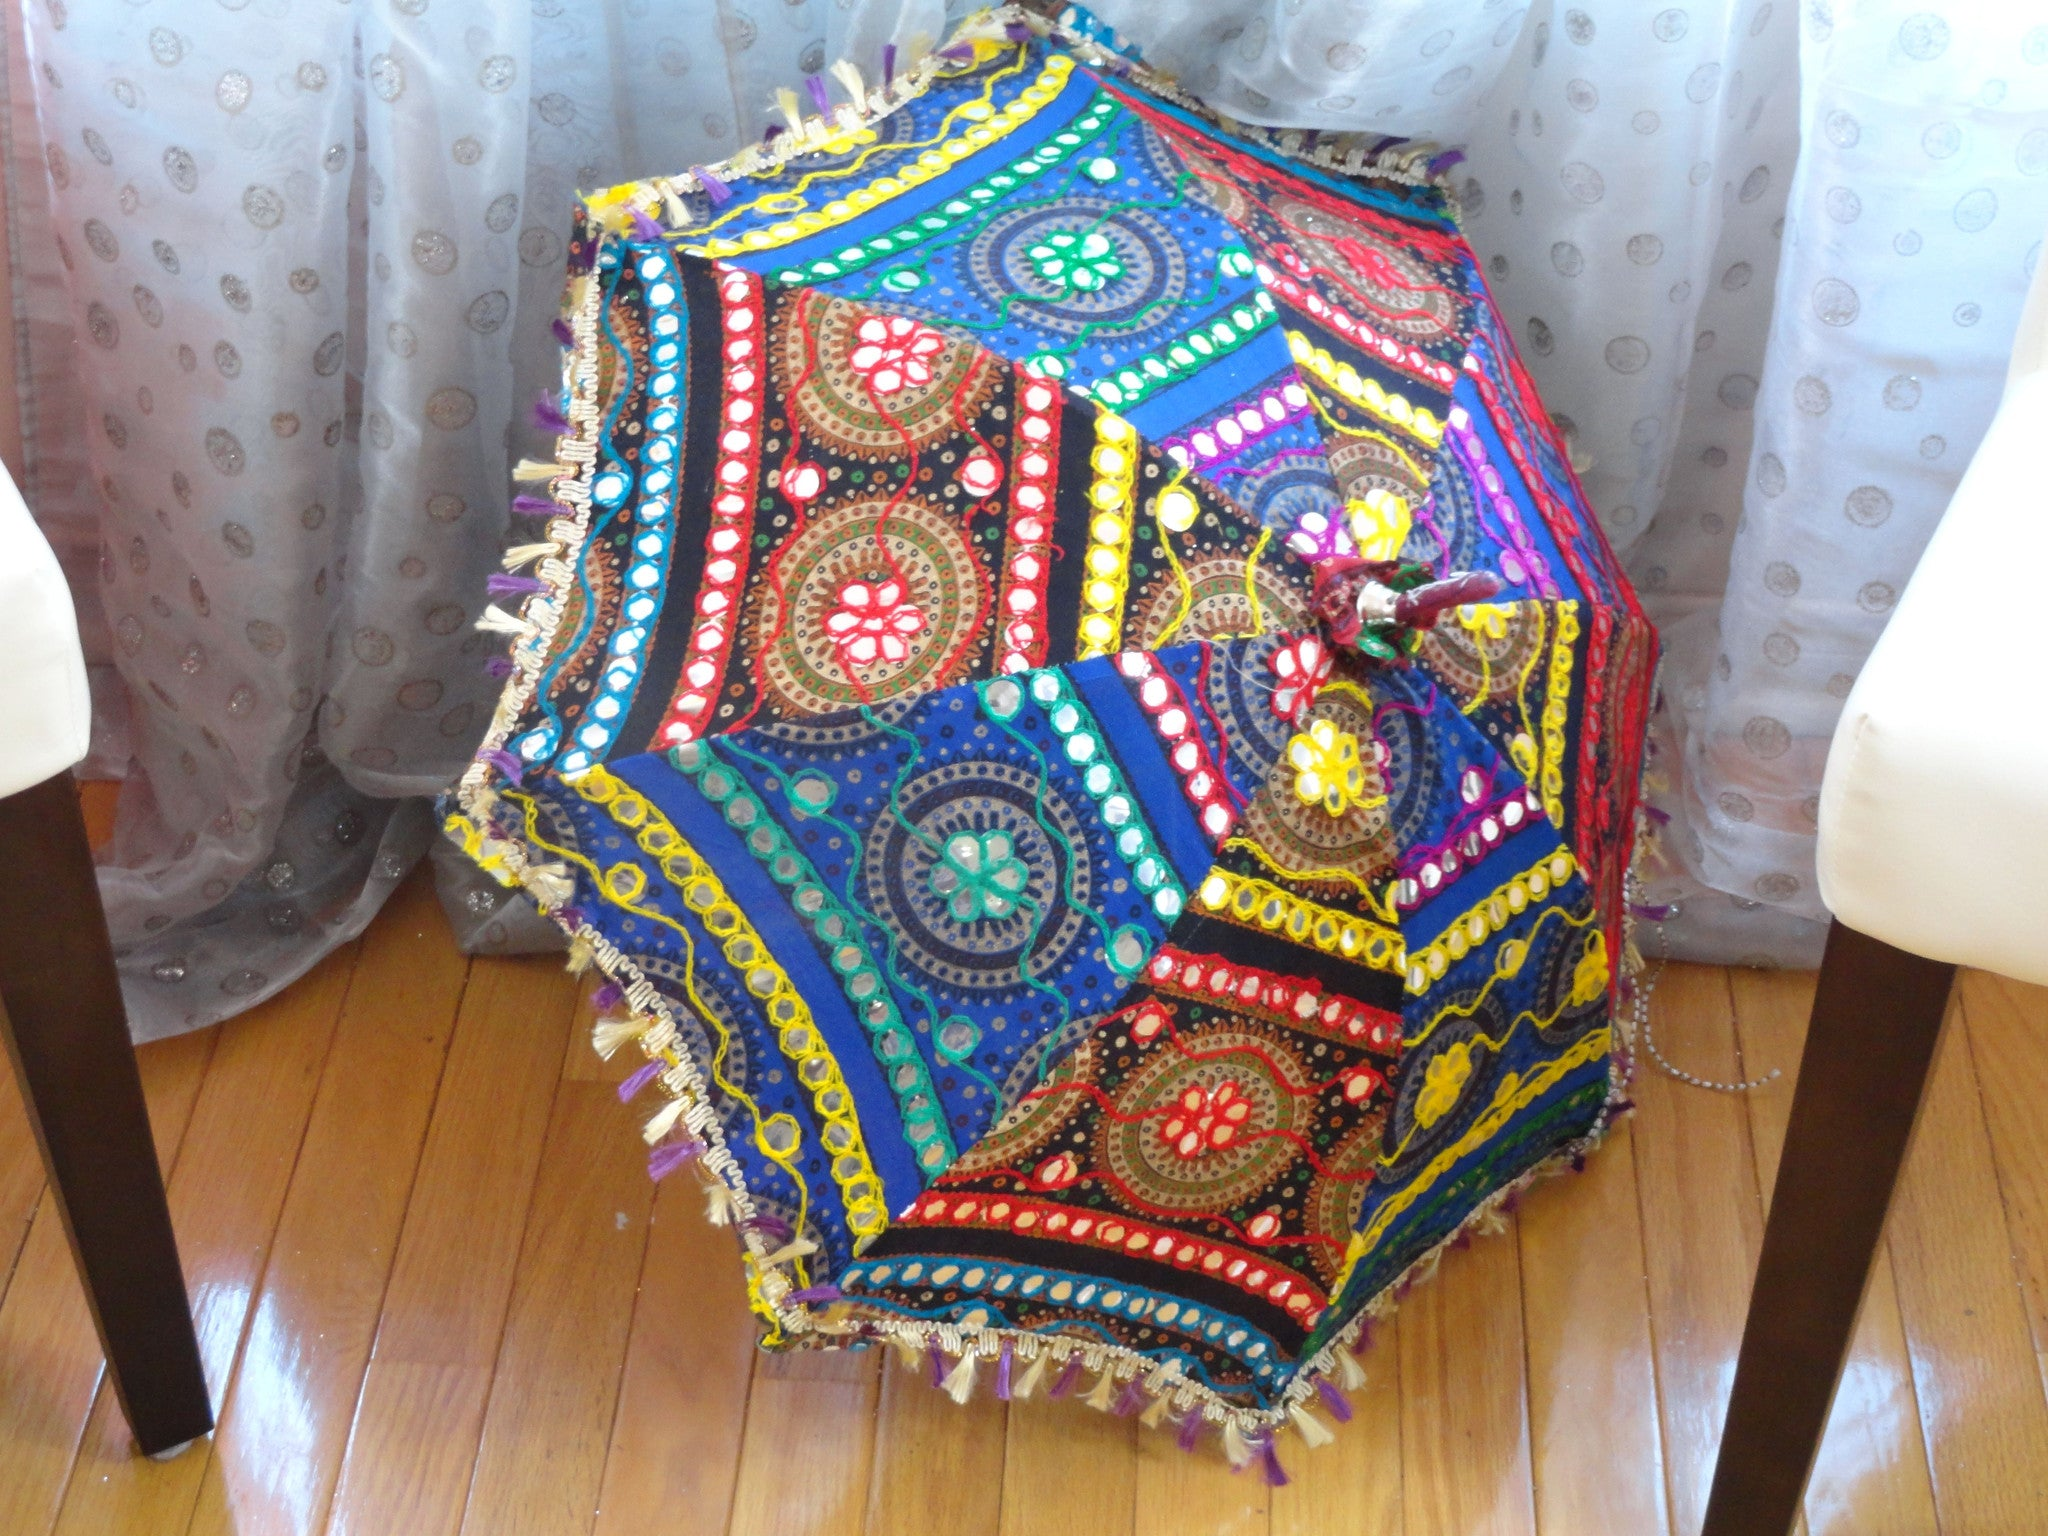 Multi color dining table lamp shade colorful ethnic embroidered multi color dining table lamp shade colorful ethnic embroidered ceiling lampshade decor ornament mozeypictures Image collections